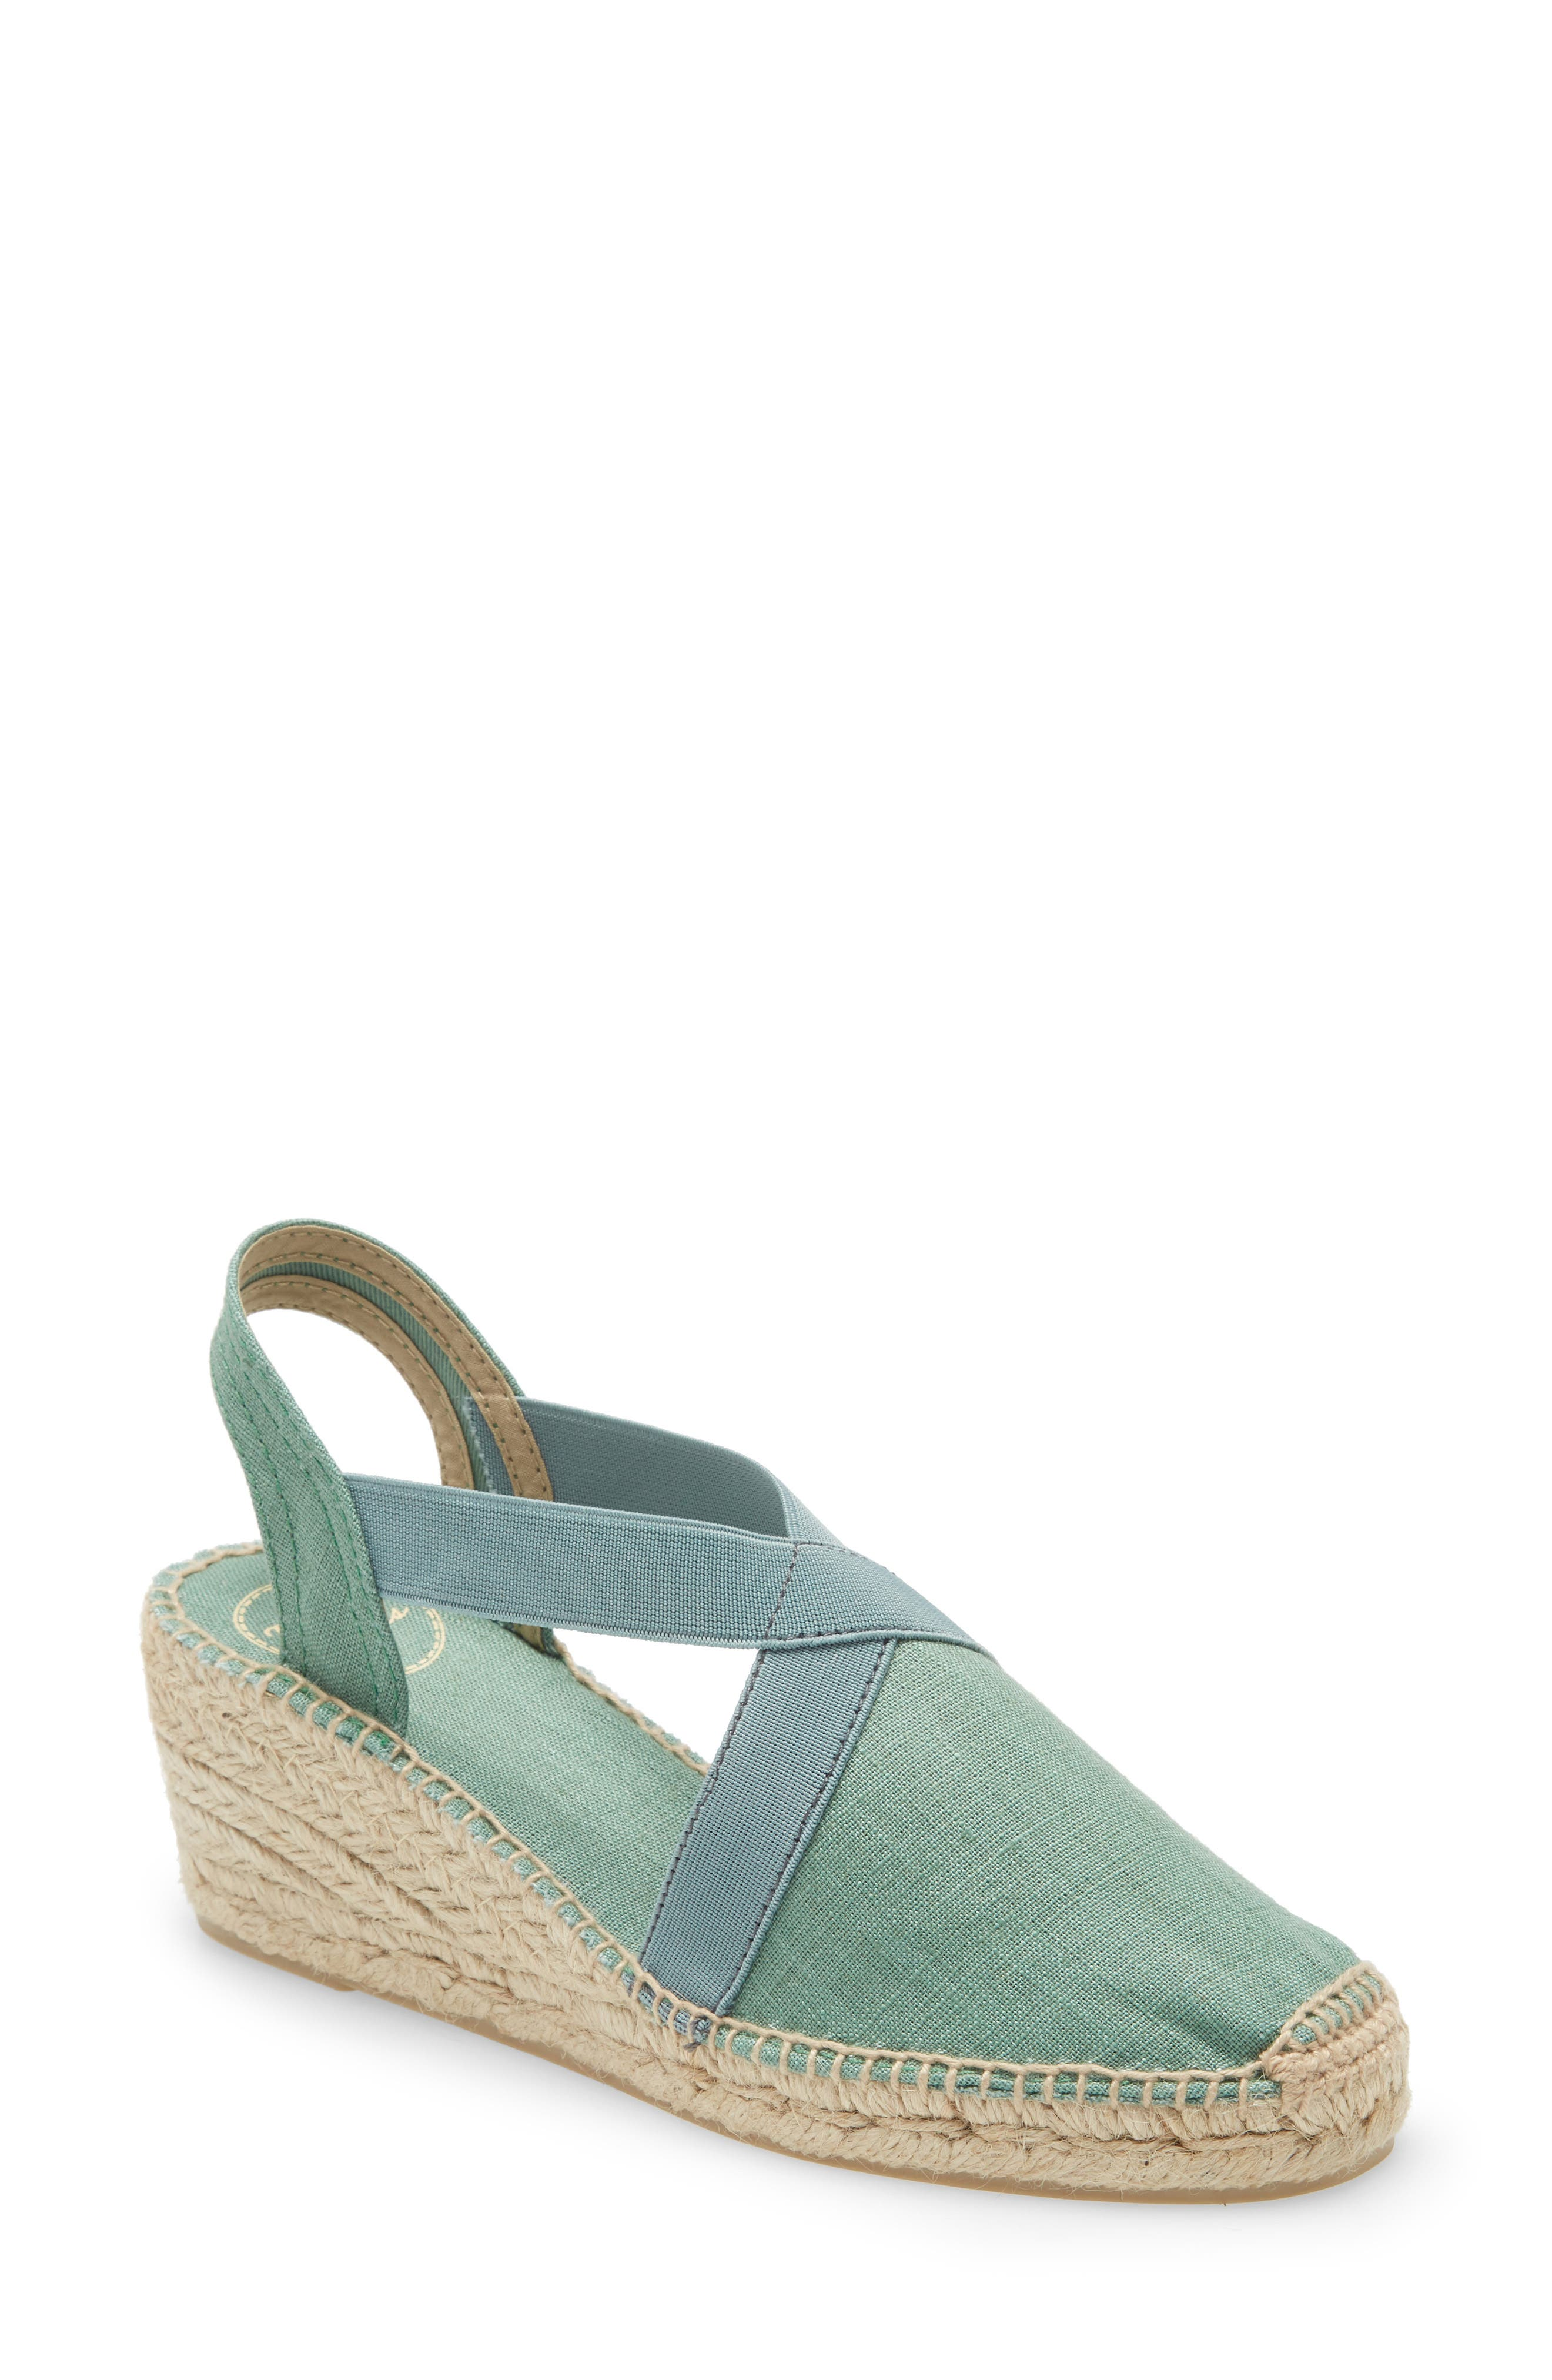 Sophistication and ease combine on this chic sandal from Toni Pons, a company that has been making stylish espadrilles for over 50 years. With a slingback strap that features elastic bands for a comfy, custom fit and a lightly padded footbed and flexible sole, you\\\'ll want to wear this linen sandal all summer long. Style Name: Toni Pons \\\'Ter\\\' Slingback Espadrille Sandal (Women). Style Number: 1056901 1. Available in stores.